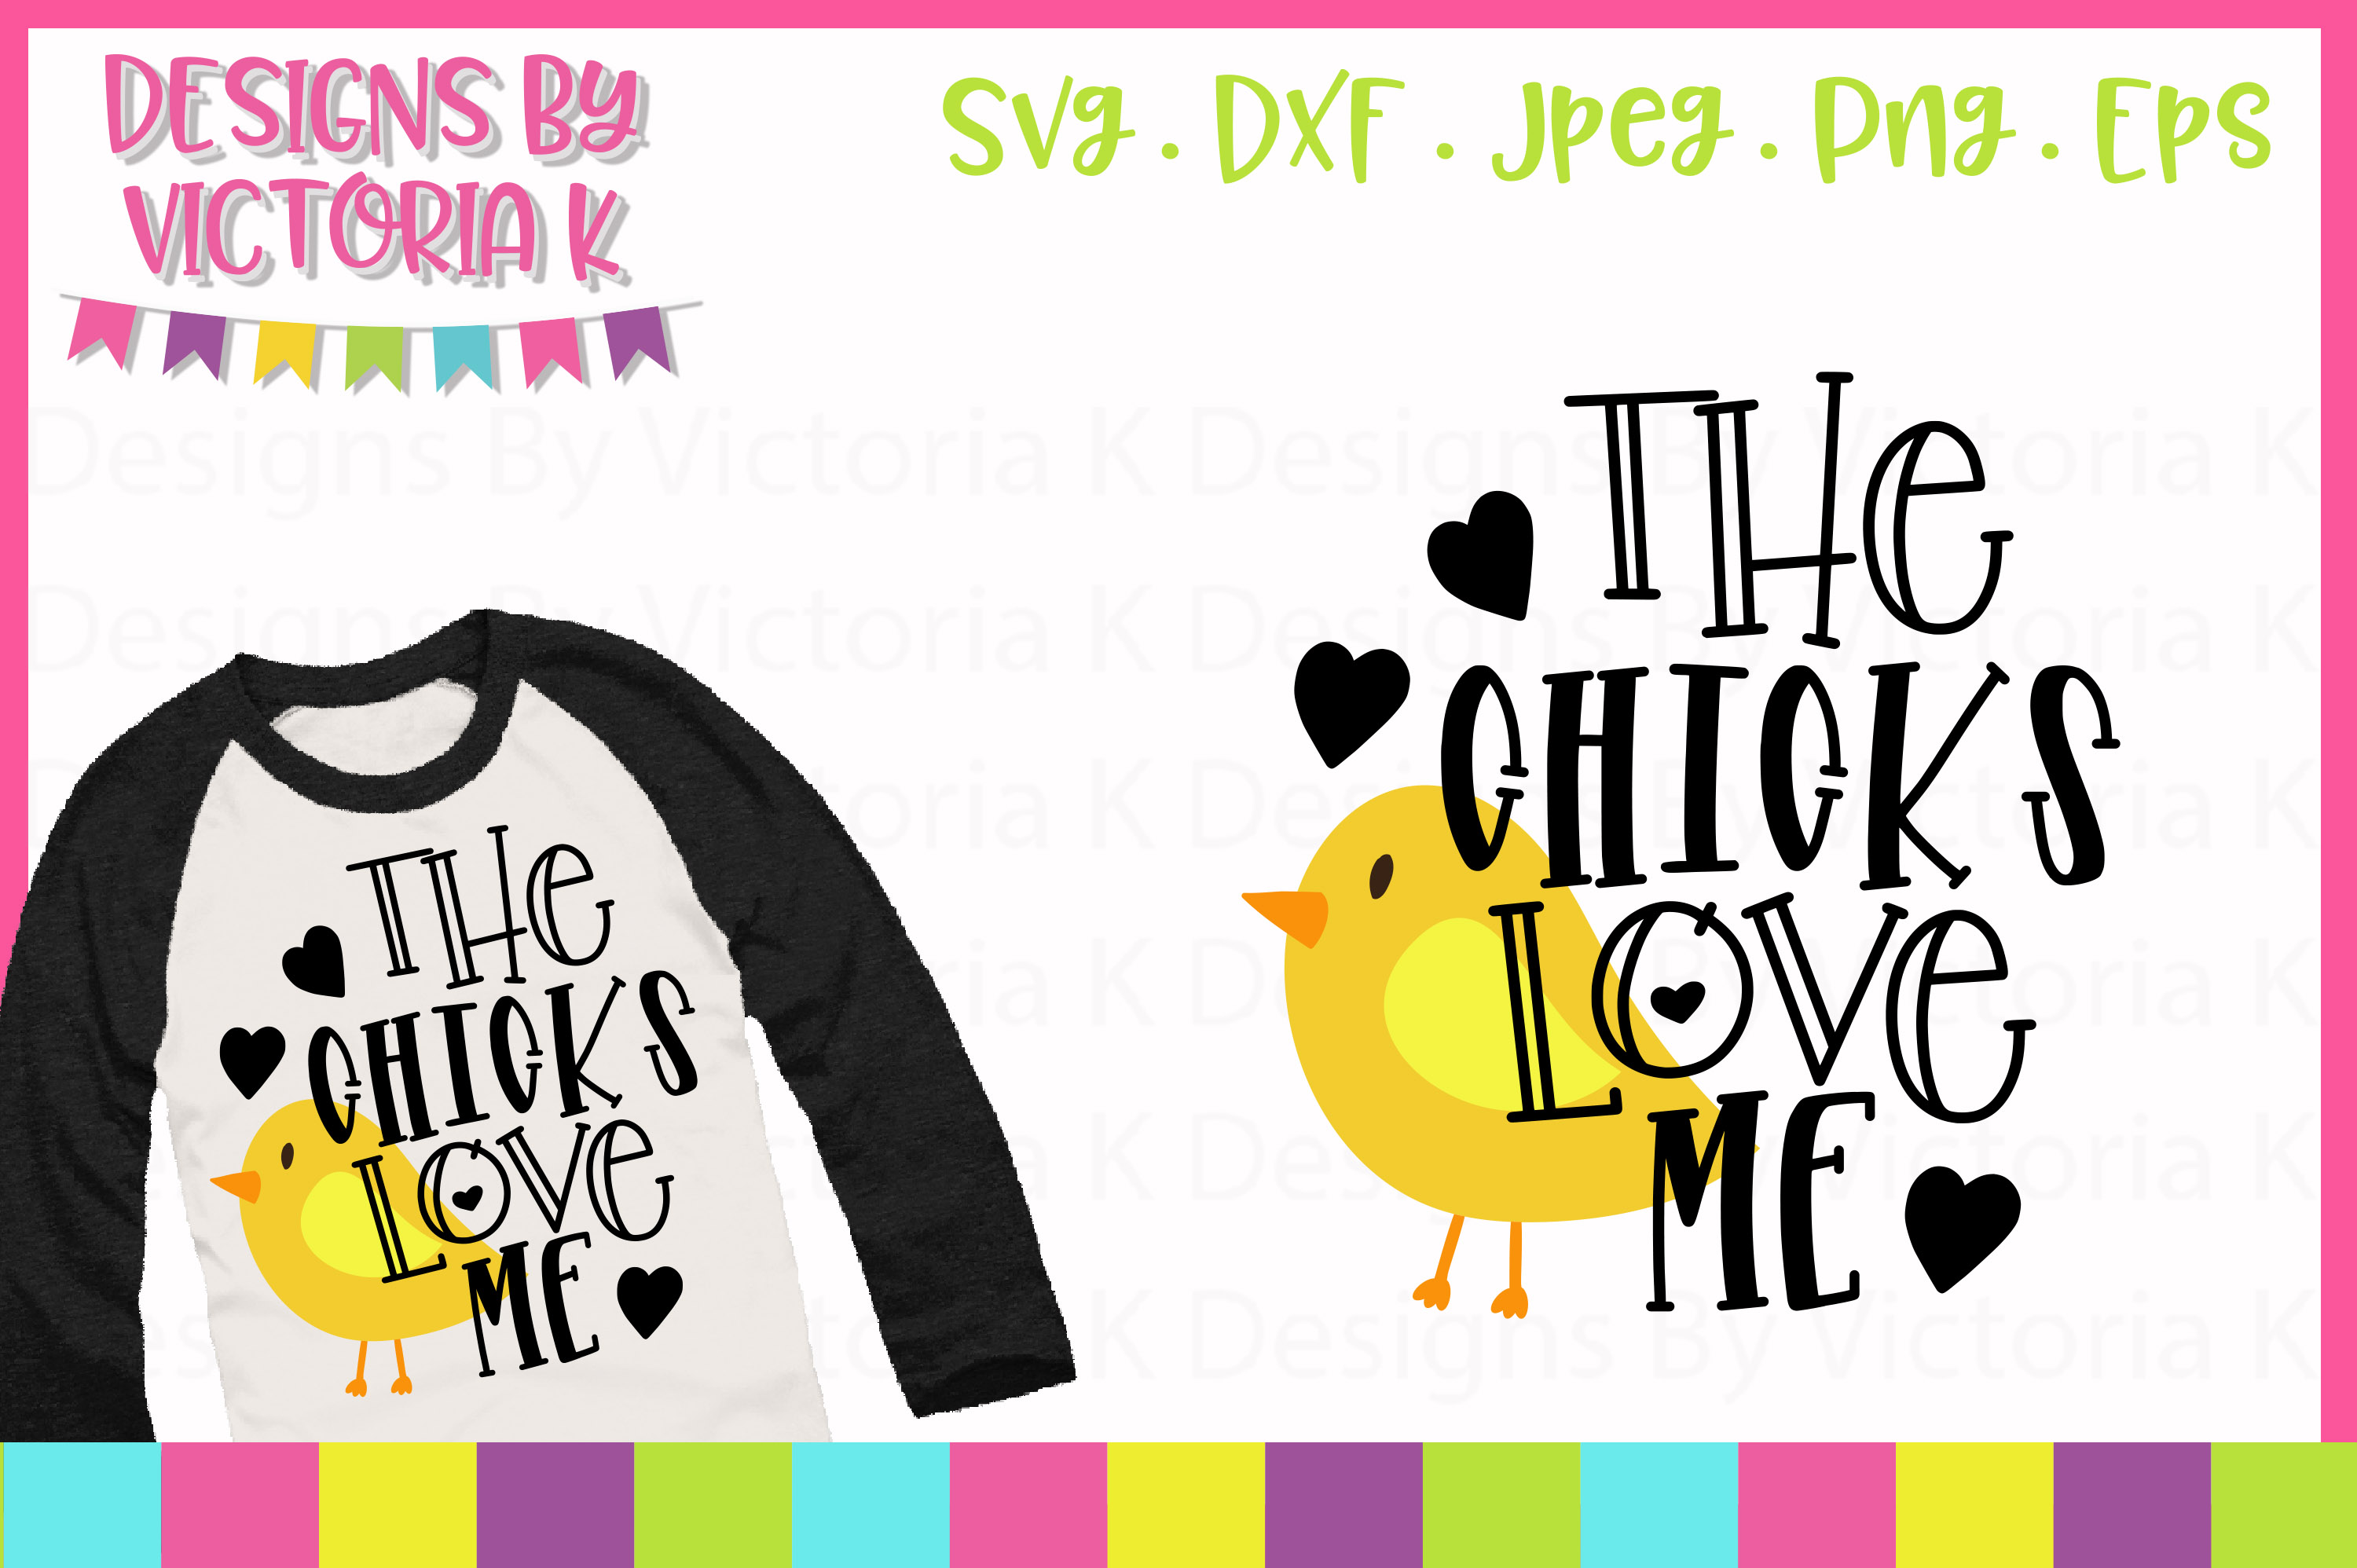 The Chicks Love Me Svg Graphic By Designs By Victoria K